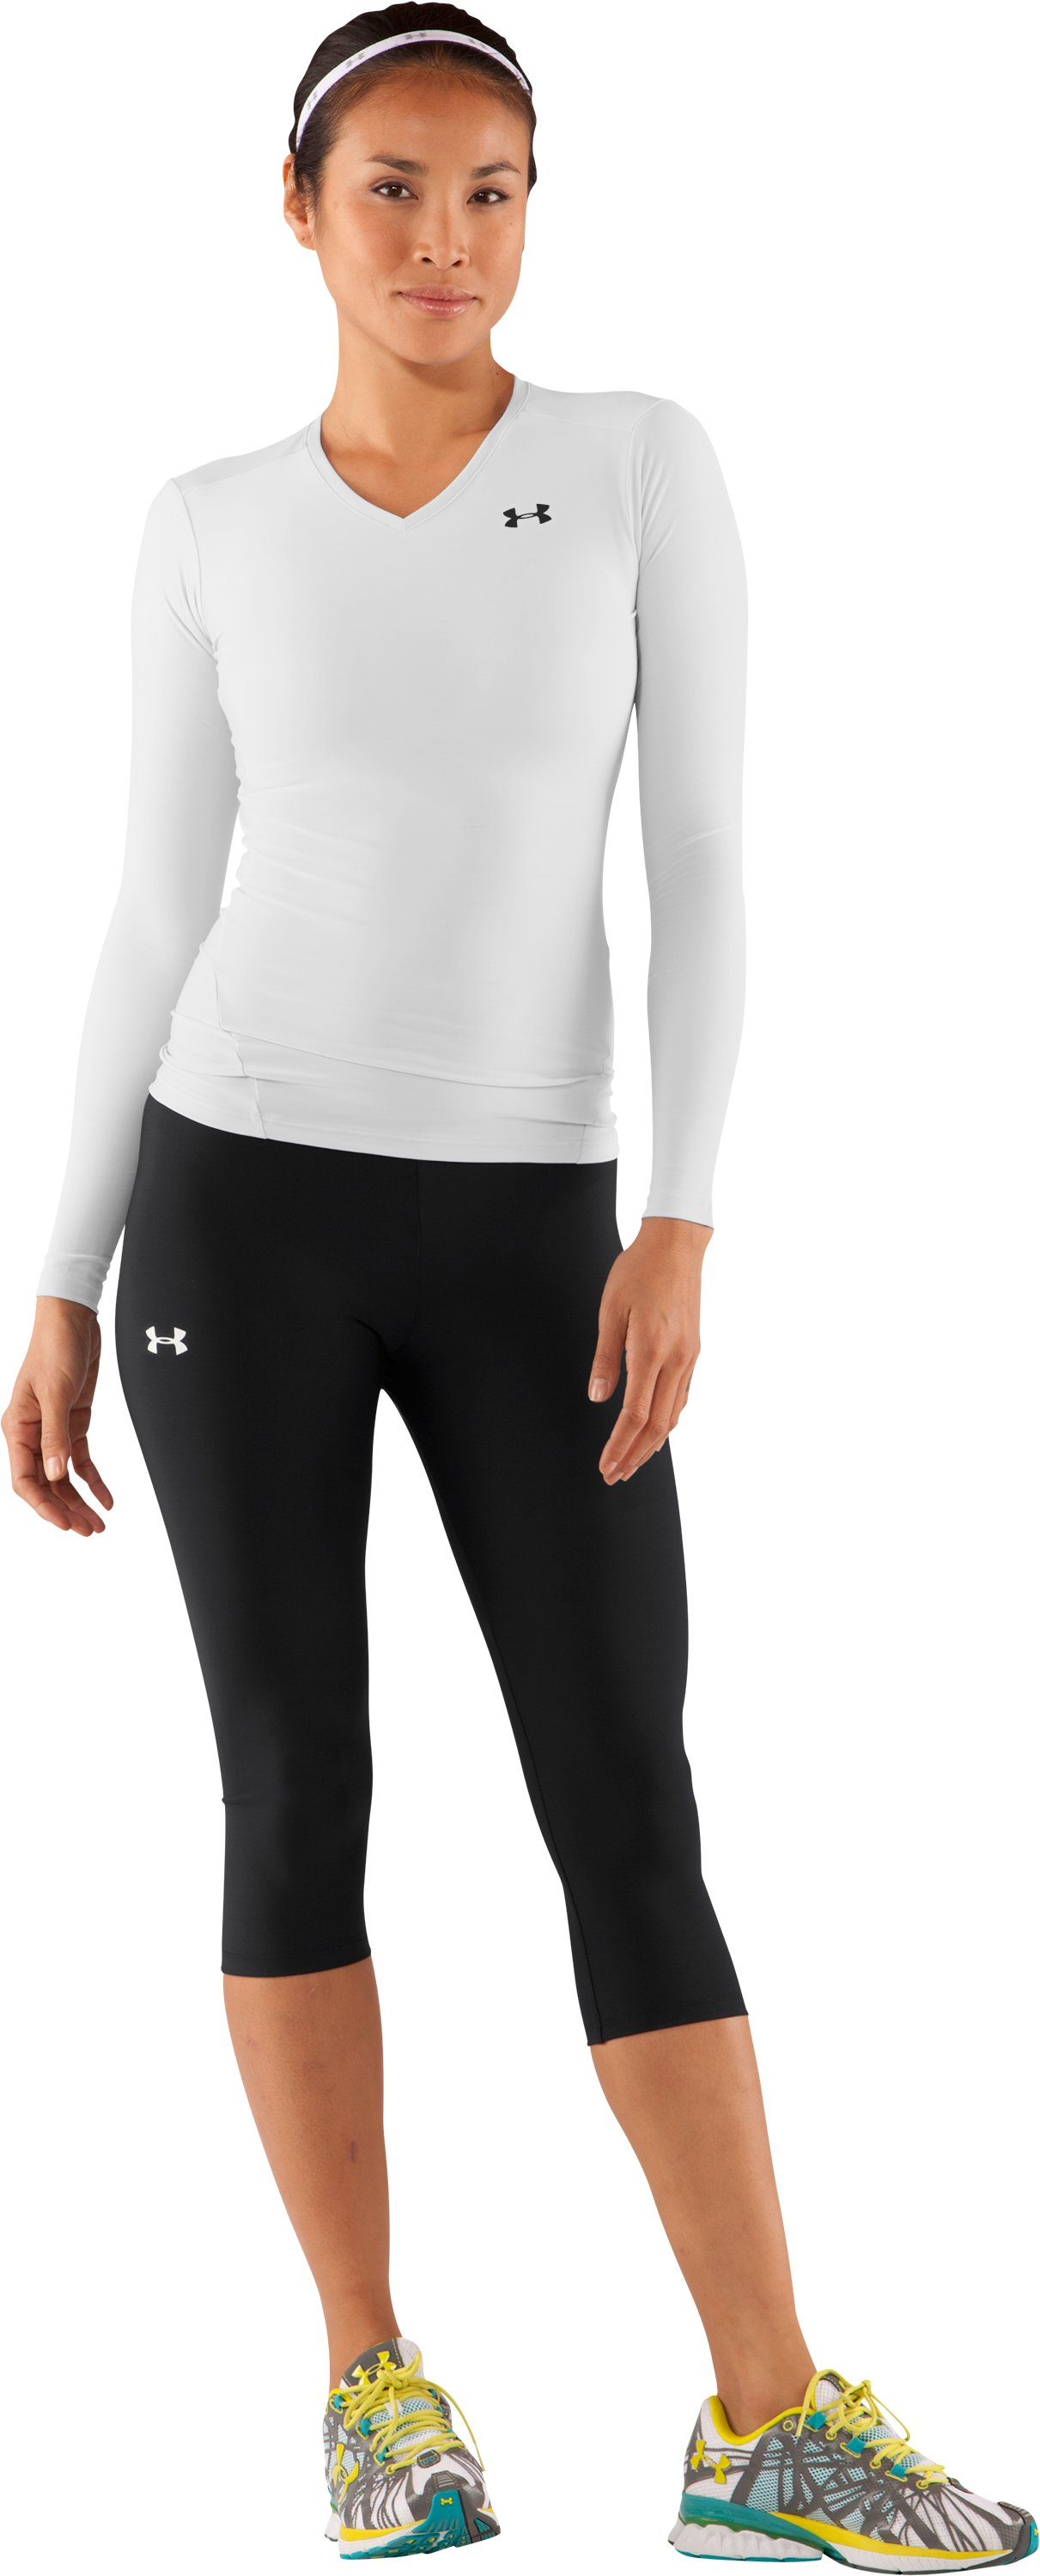 Women's HeatGear® Long Sleeve Compression T-Shirt, White, Front